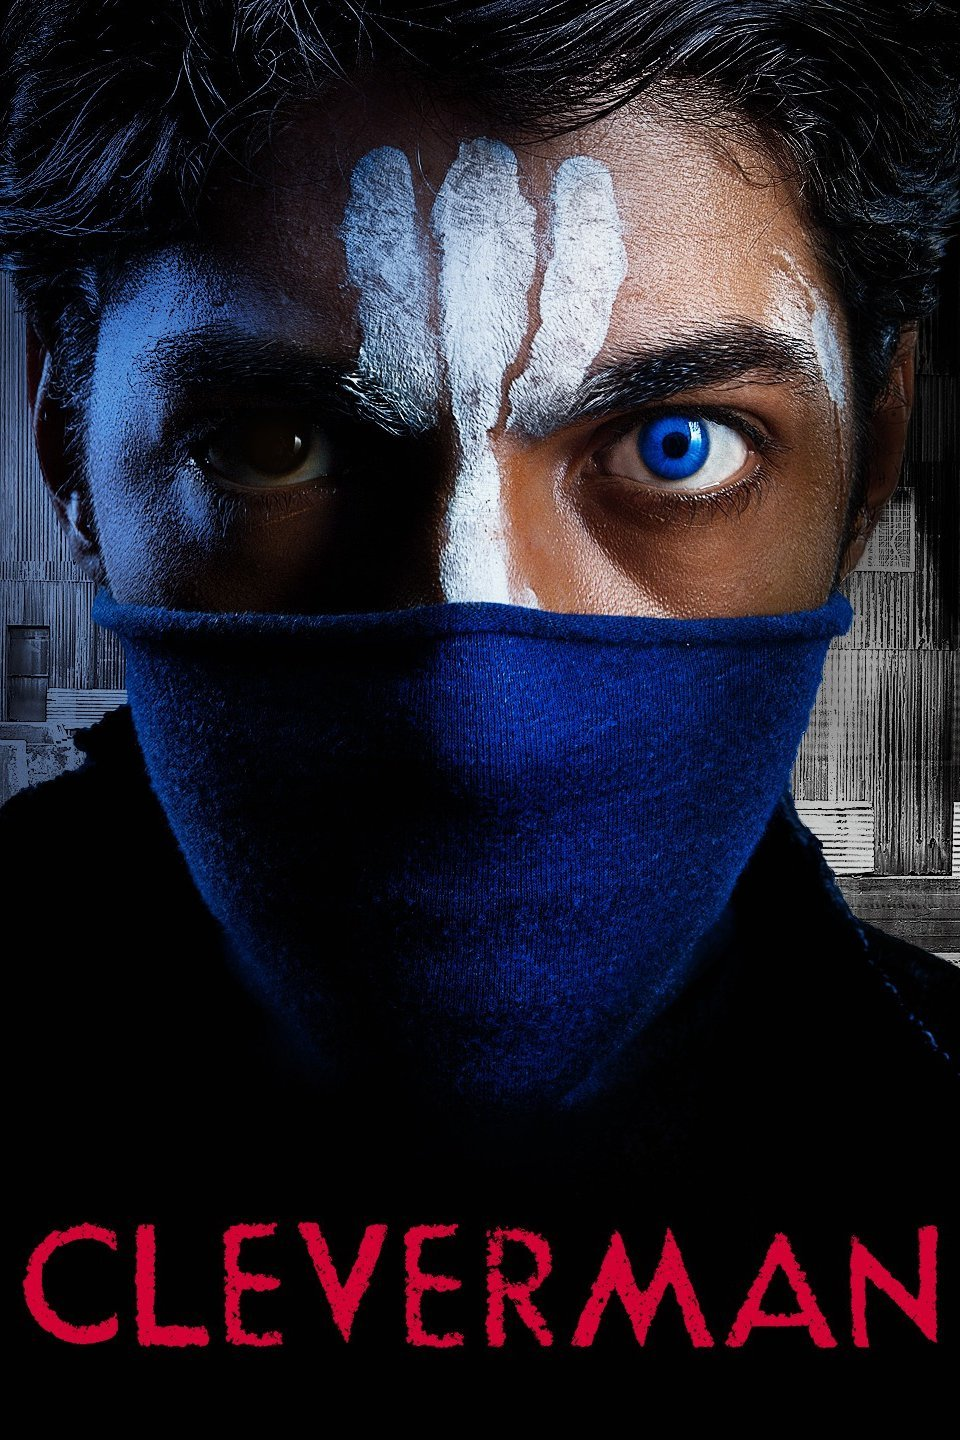 Cleverman Season 2 Episode 1 Download HDTV 480p & 720p